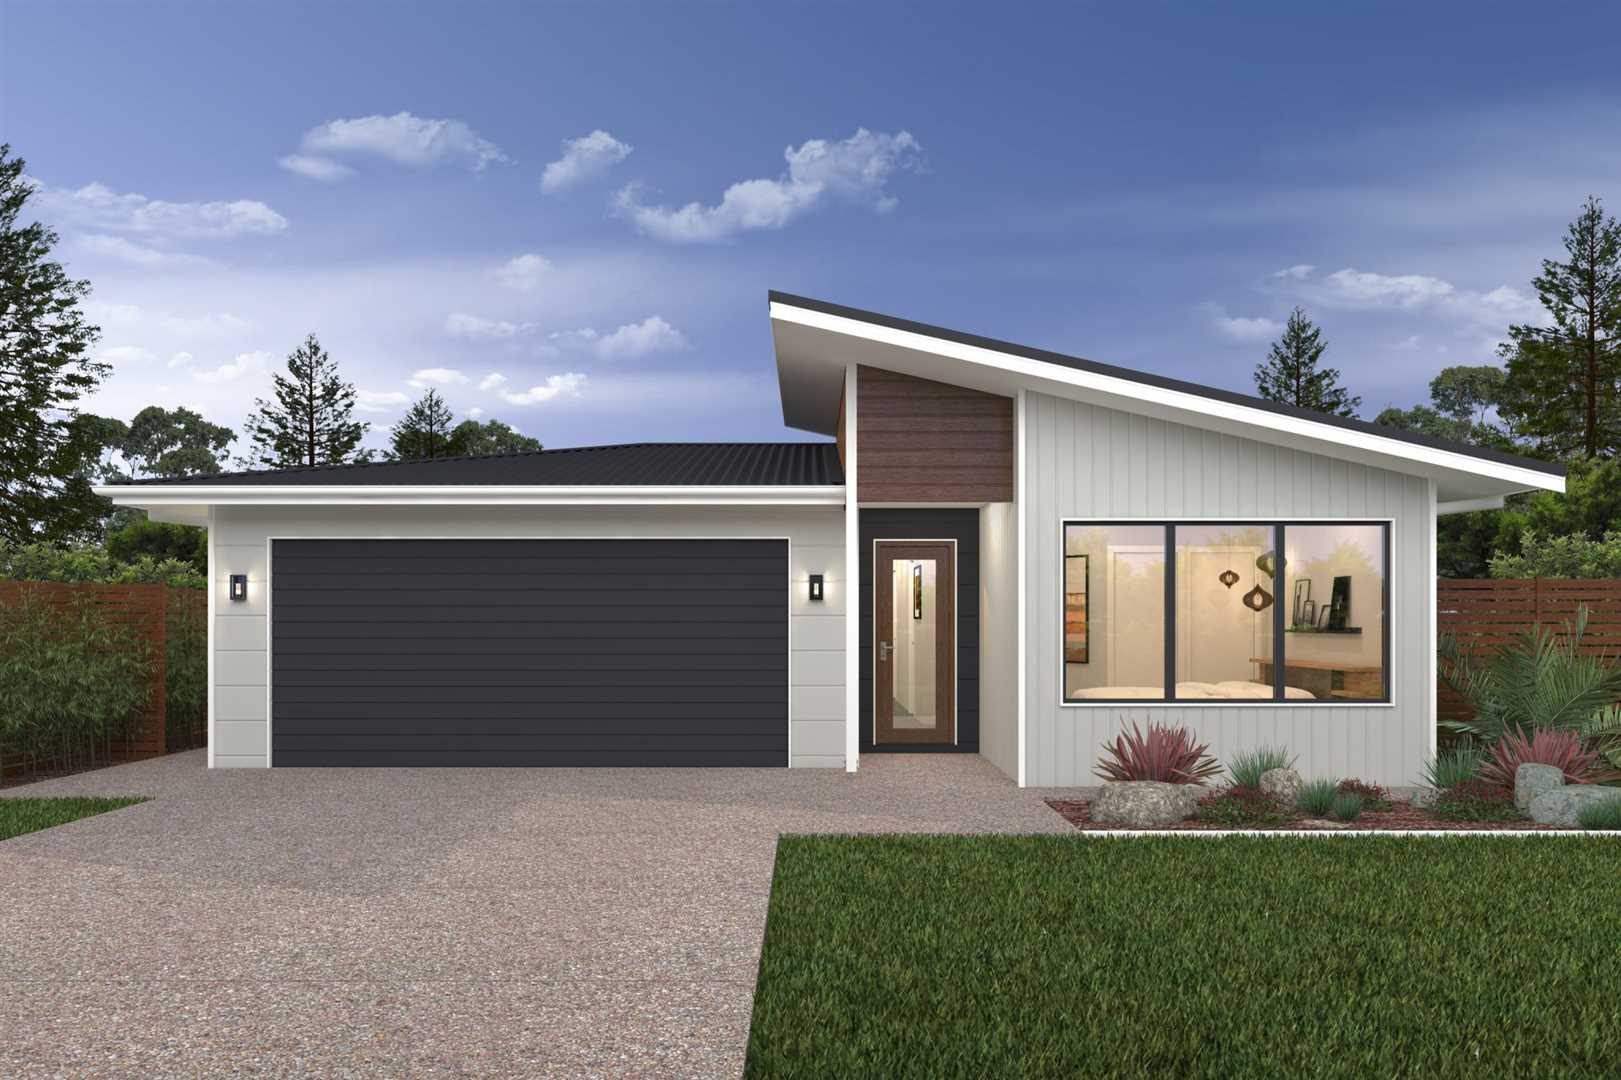 House & Land Package~Live or Invest!  $426,500